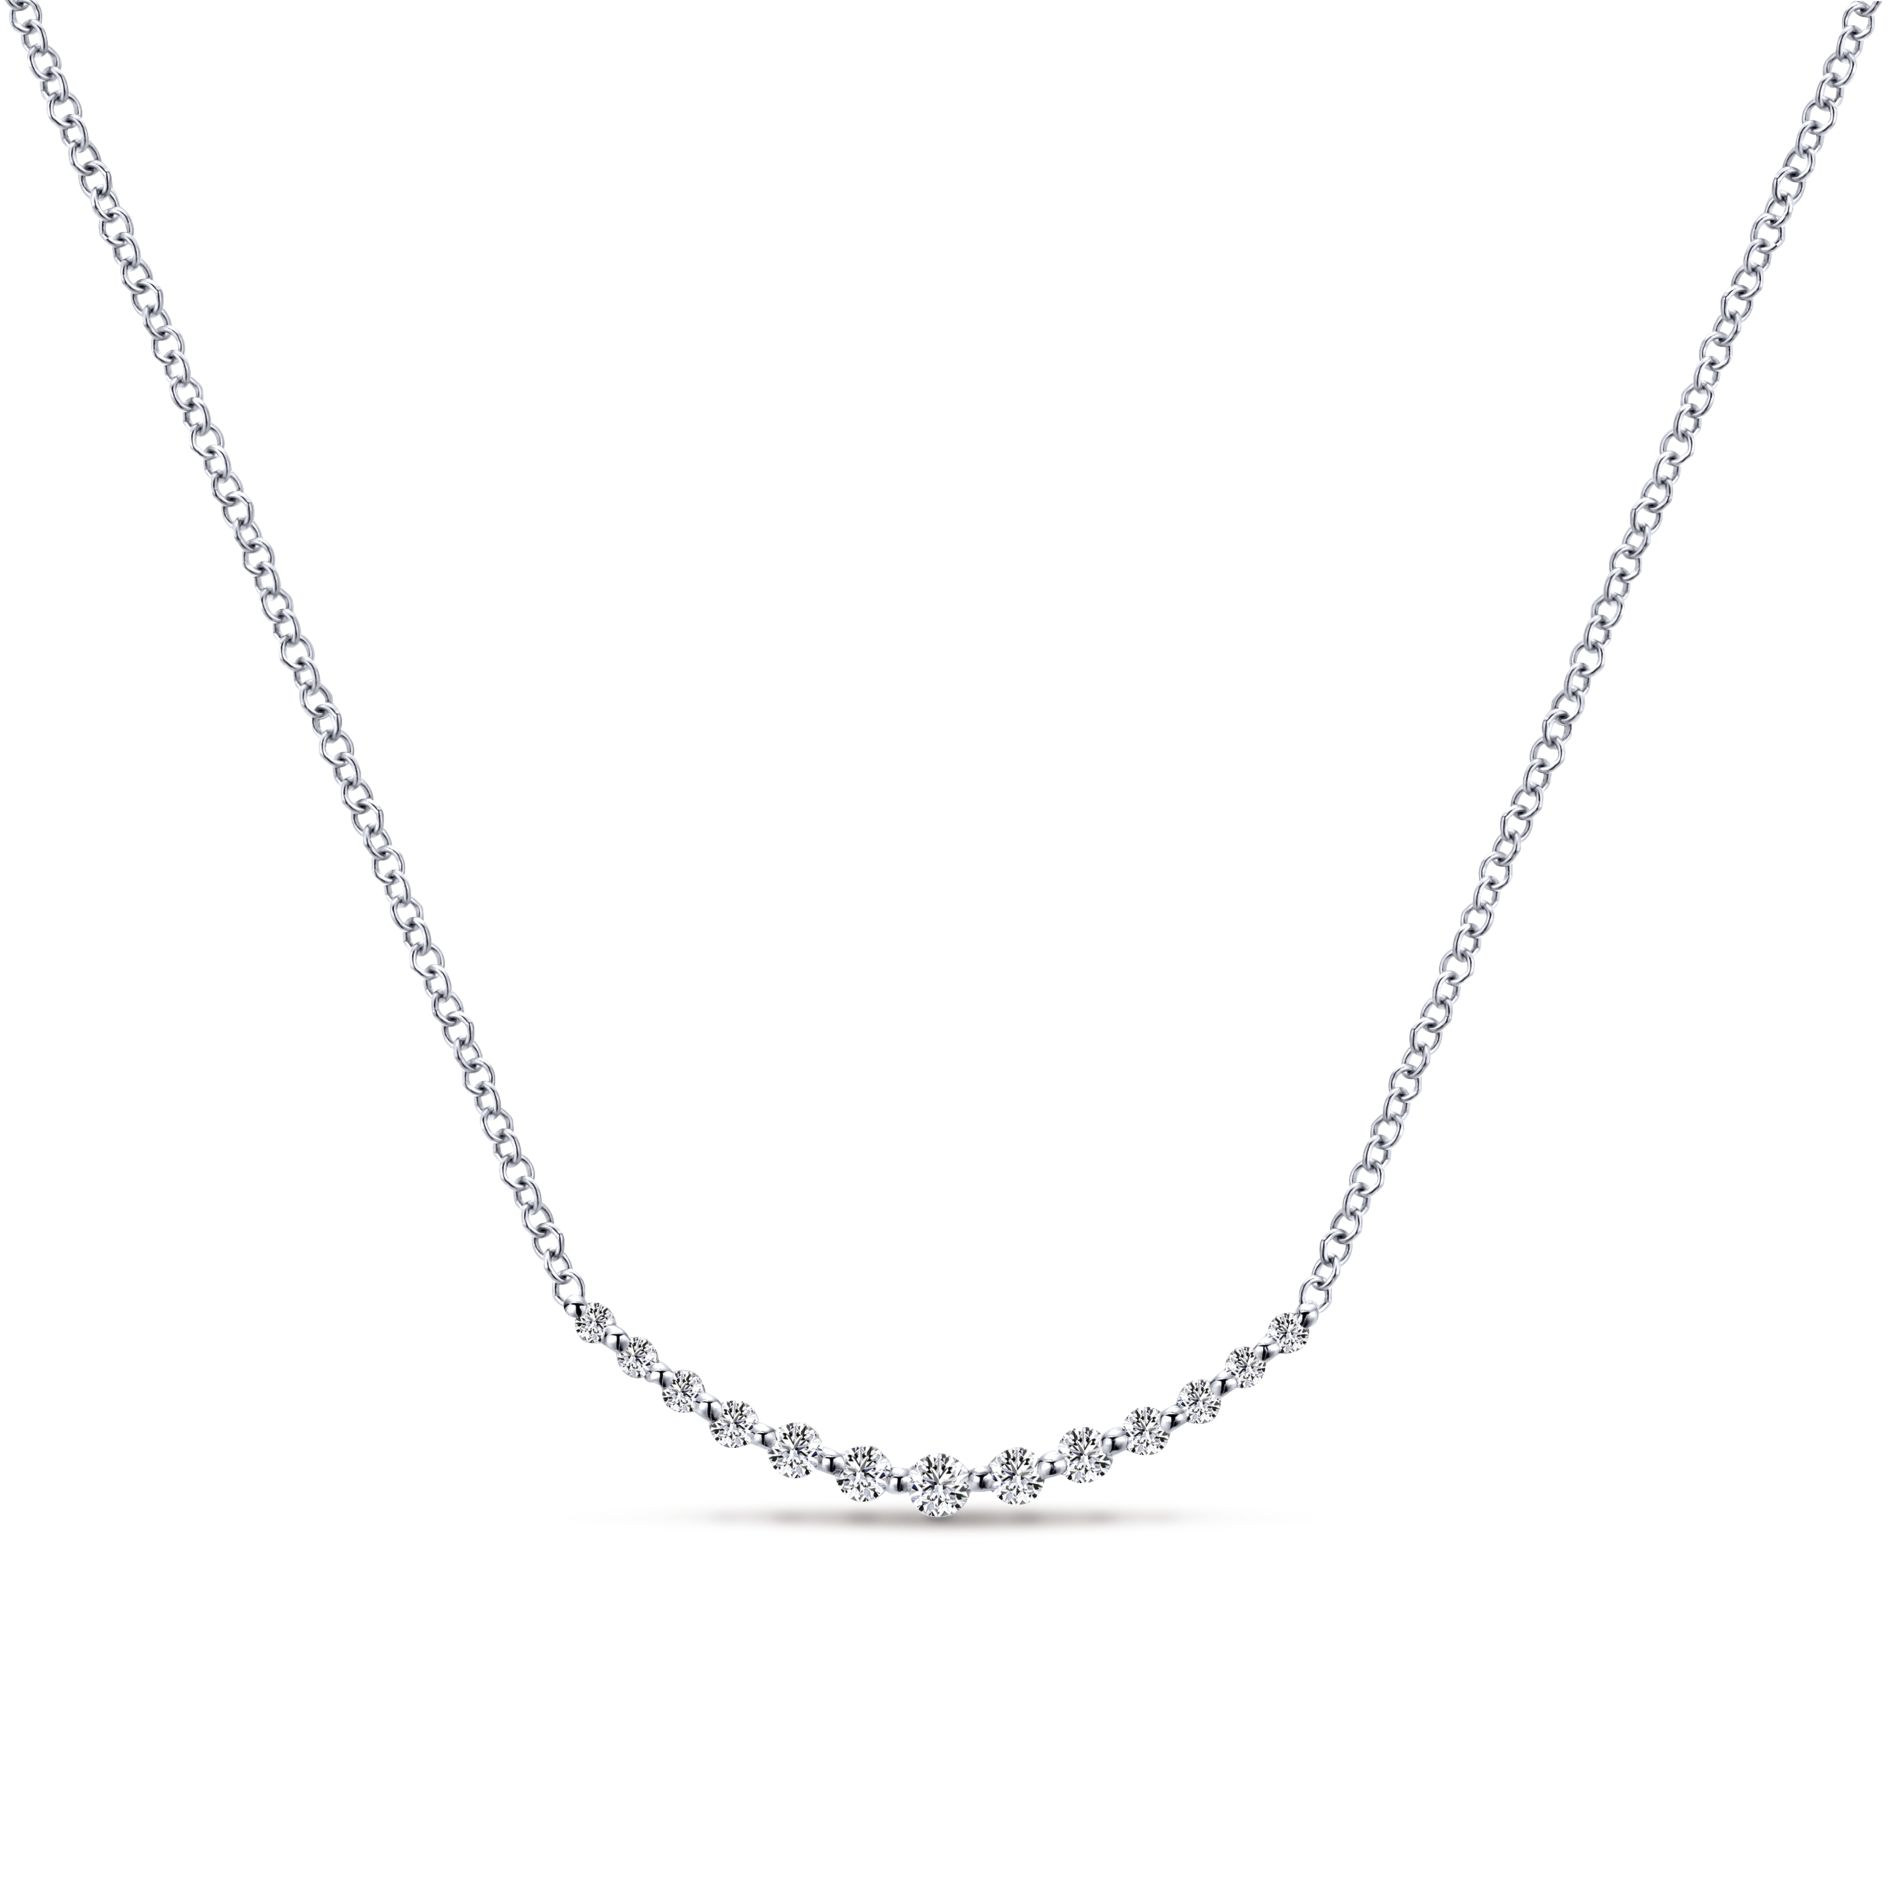 Necklaces - WHITE GOLD BAR DIAMOND NECKLACE